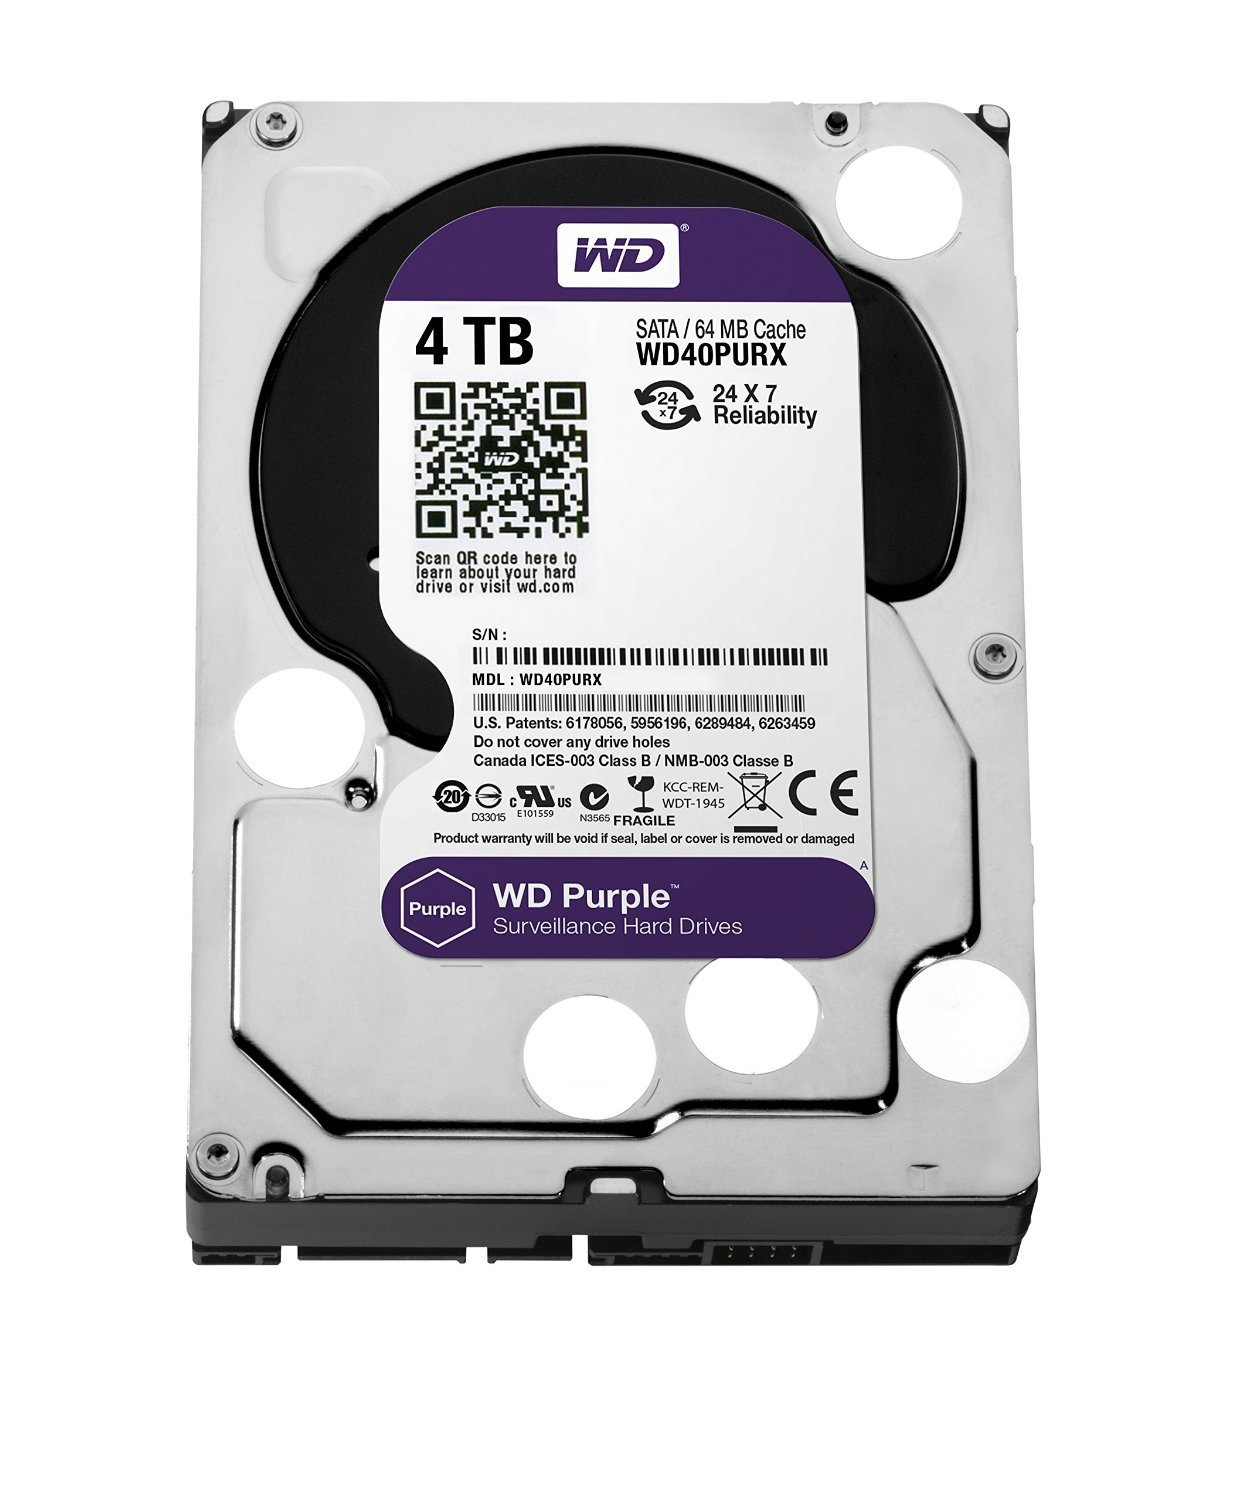 DVR Peripheral & Accessories,WD,WD Purple Surviellance HDD 4TB